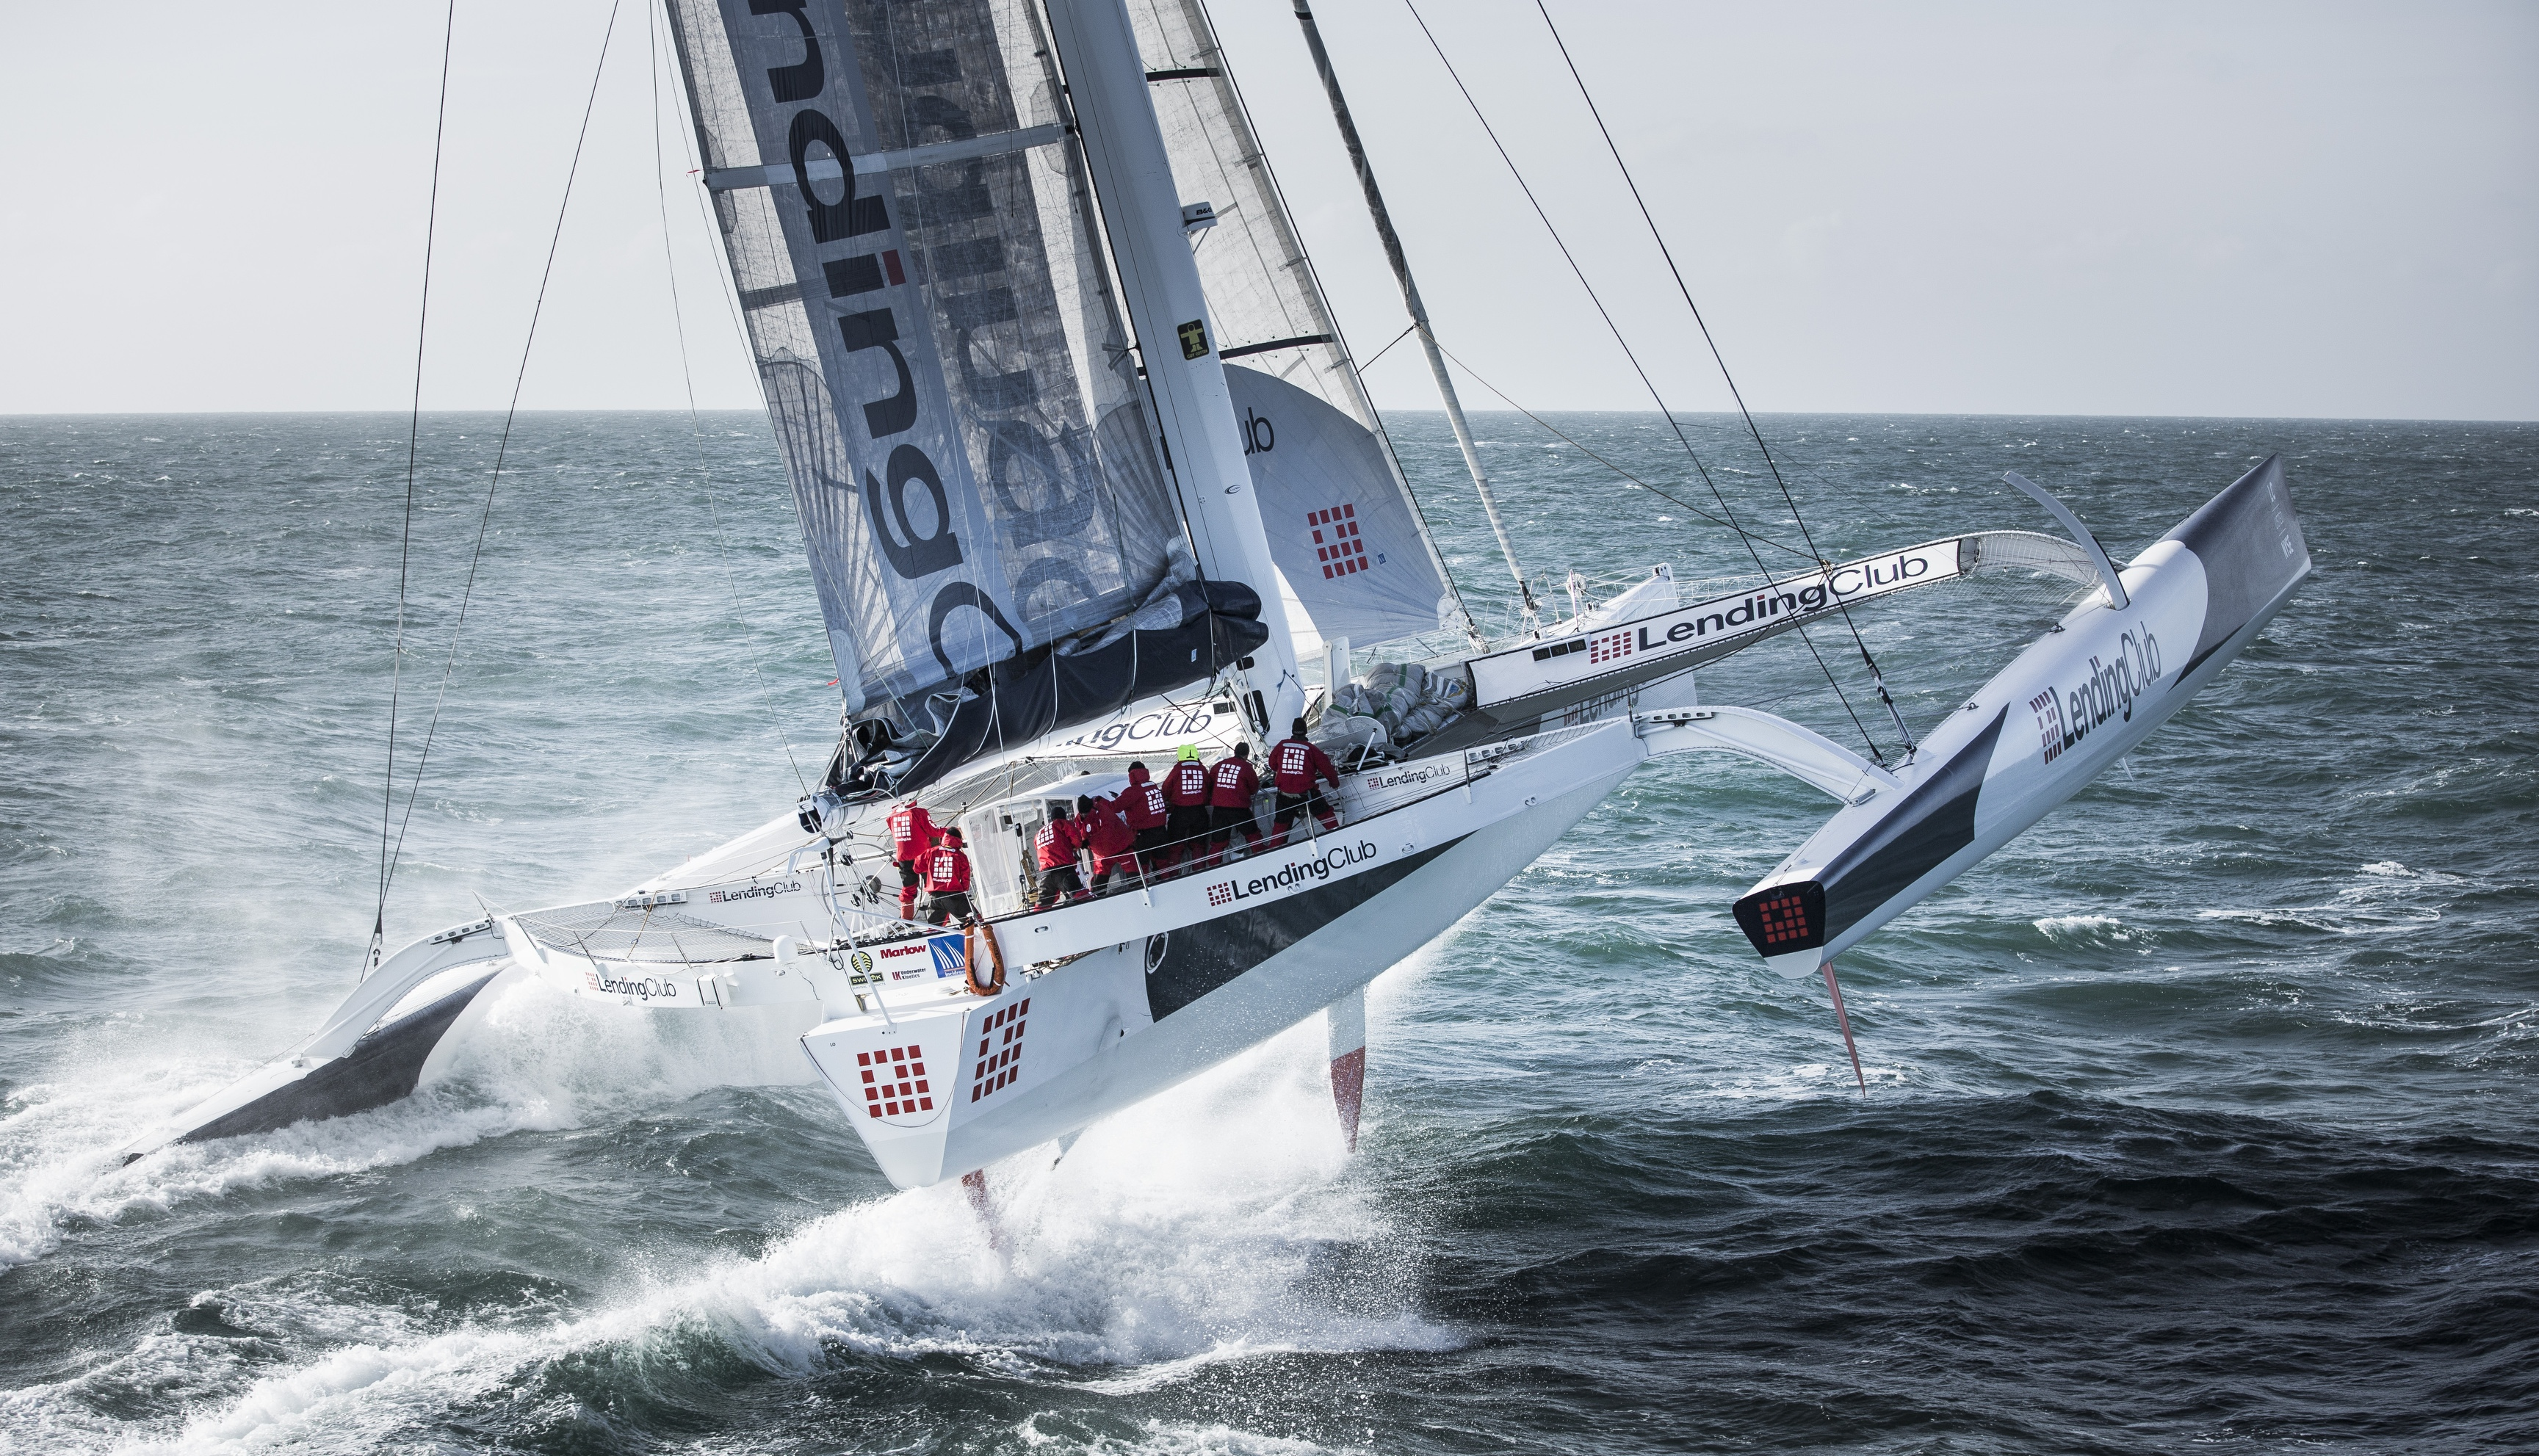 The Lending Club maxi trimaran skippered by Ryan Breymaer. show here in action as they try and break the world record for sailing non stop from Cowes - Dinard in France Credit - Lloyd Images